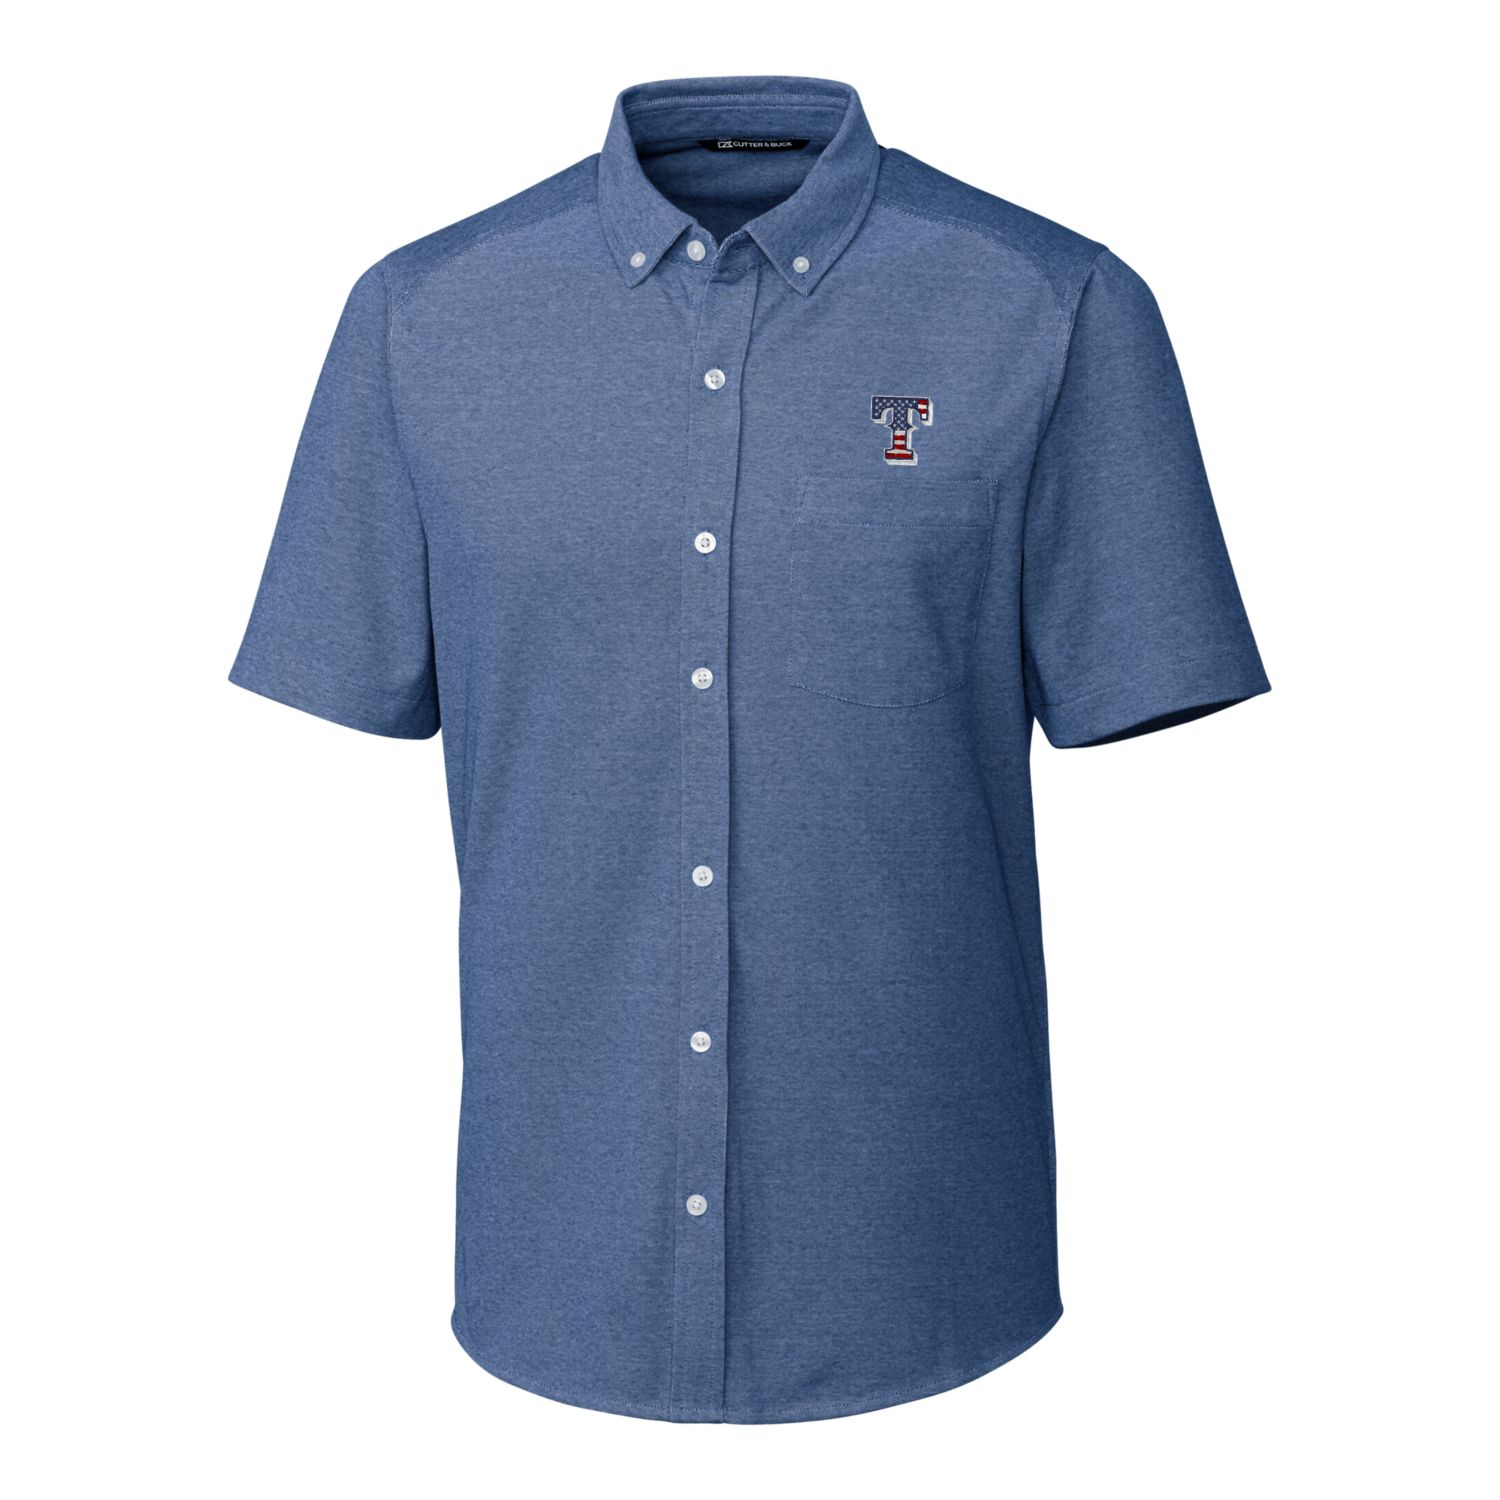 Texas Rangers Cutter & Buck Stars & Stripes Reach Oxford Button-Down Short Sleeve Shirt - Navy